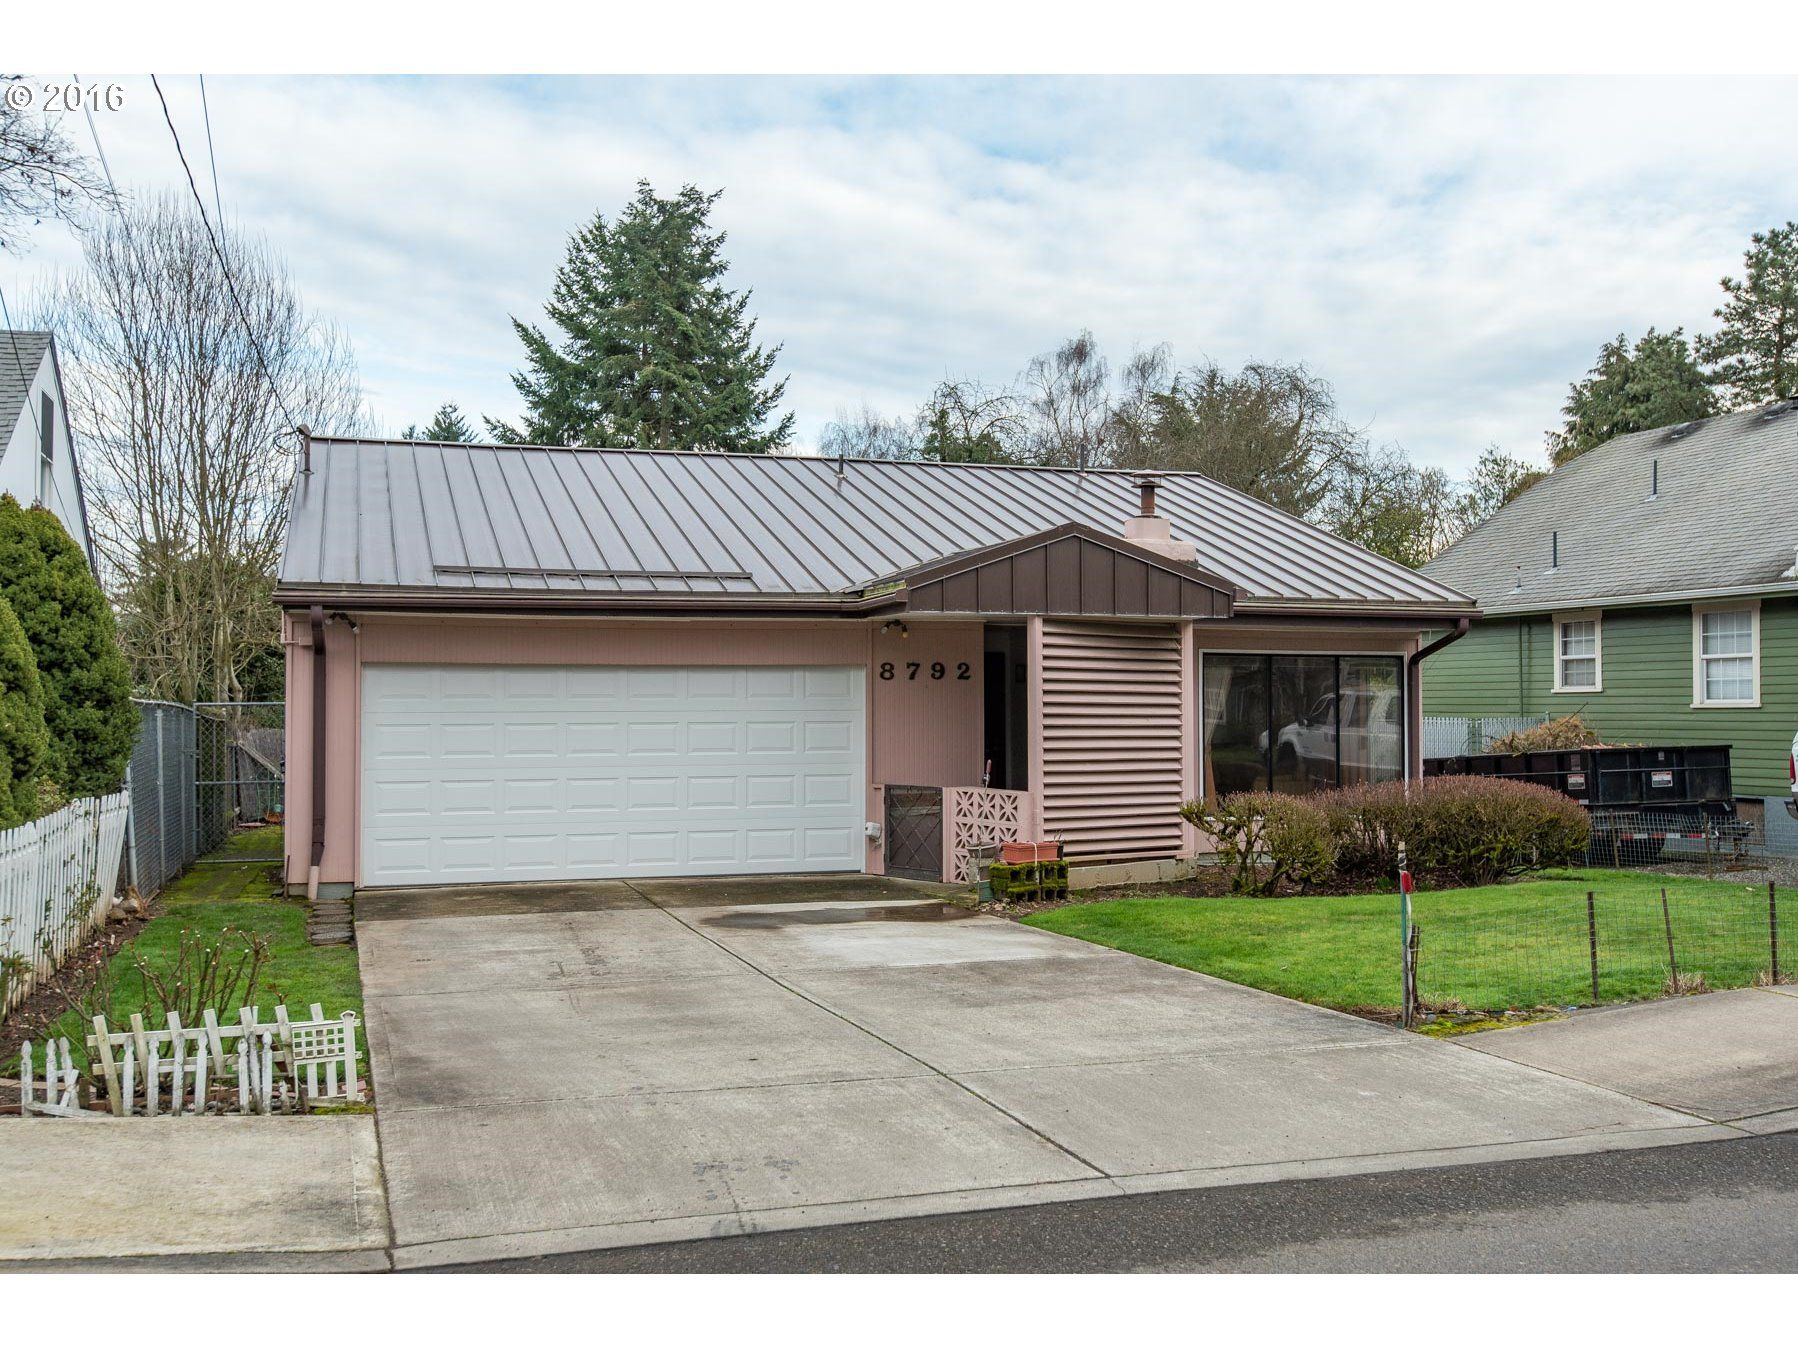 Mid-Century Pick of the Week: 1963 Midcentury Ranch. (Ardenwald, N. Milwaukie).  Darling vintage kitchen and bath with original fixtures and paneling. Hardwoods. Sweet .23 acre lot! Close to Sellwood! 3 beds, 1 bath, $265,000. Listing courtesy of Hasson Co.